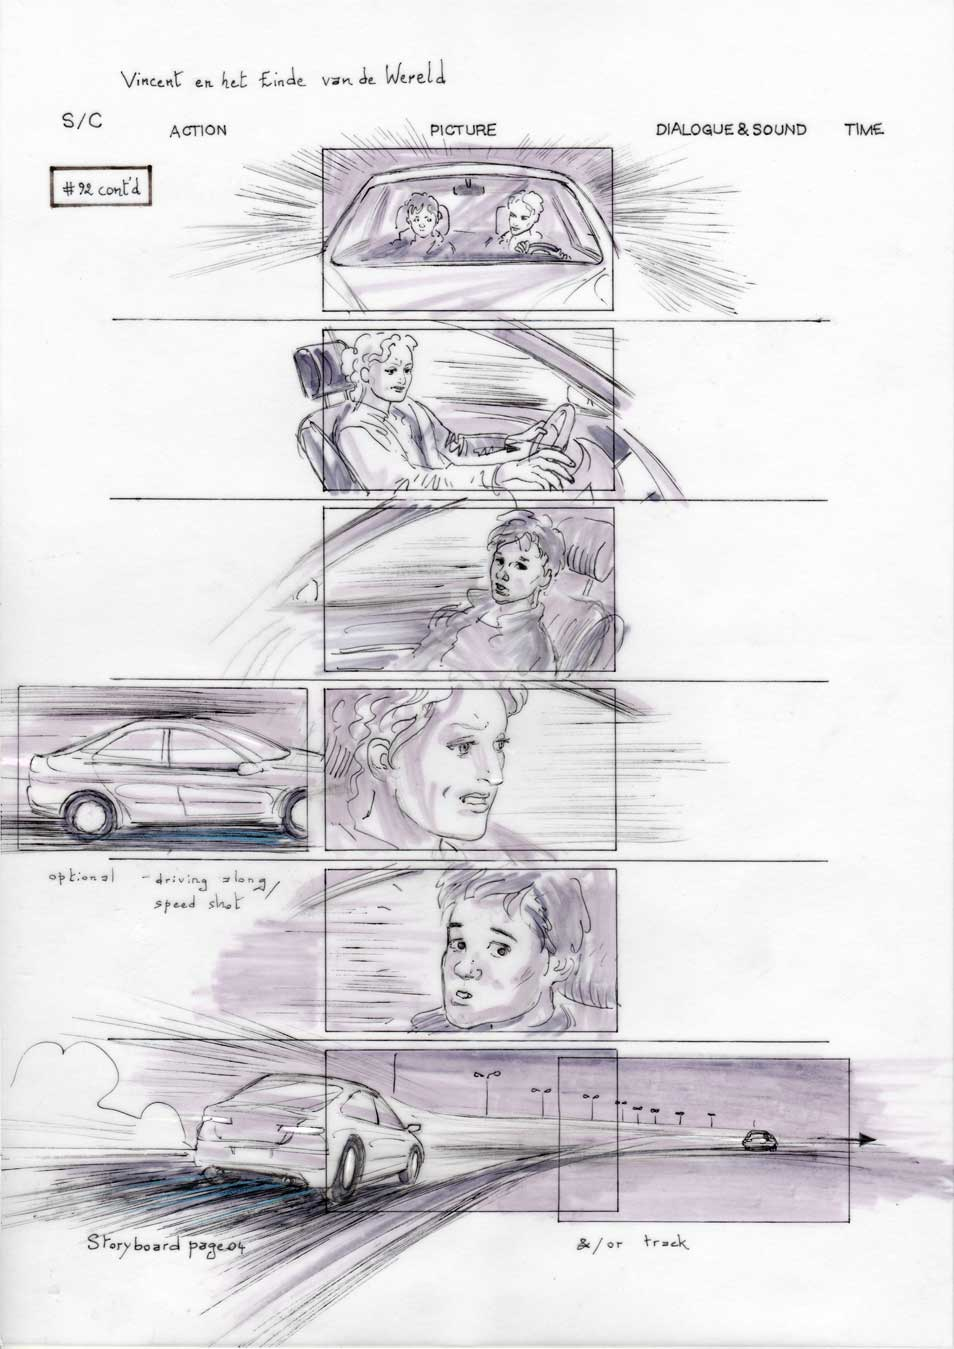 Vincent and the End of the World storyboard 04